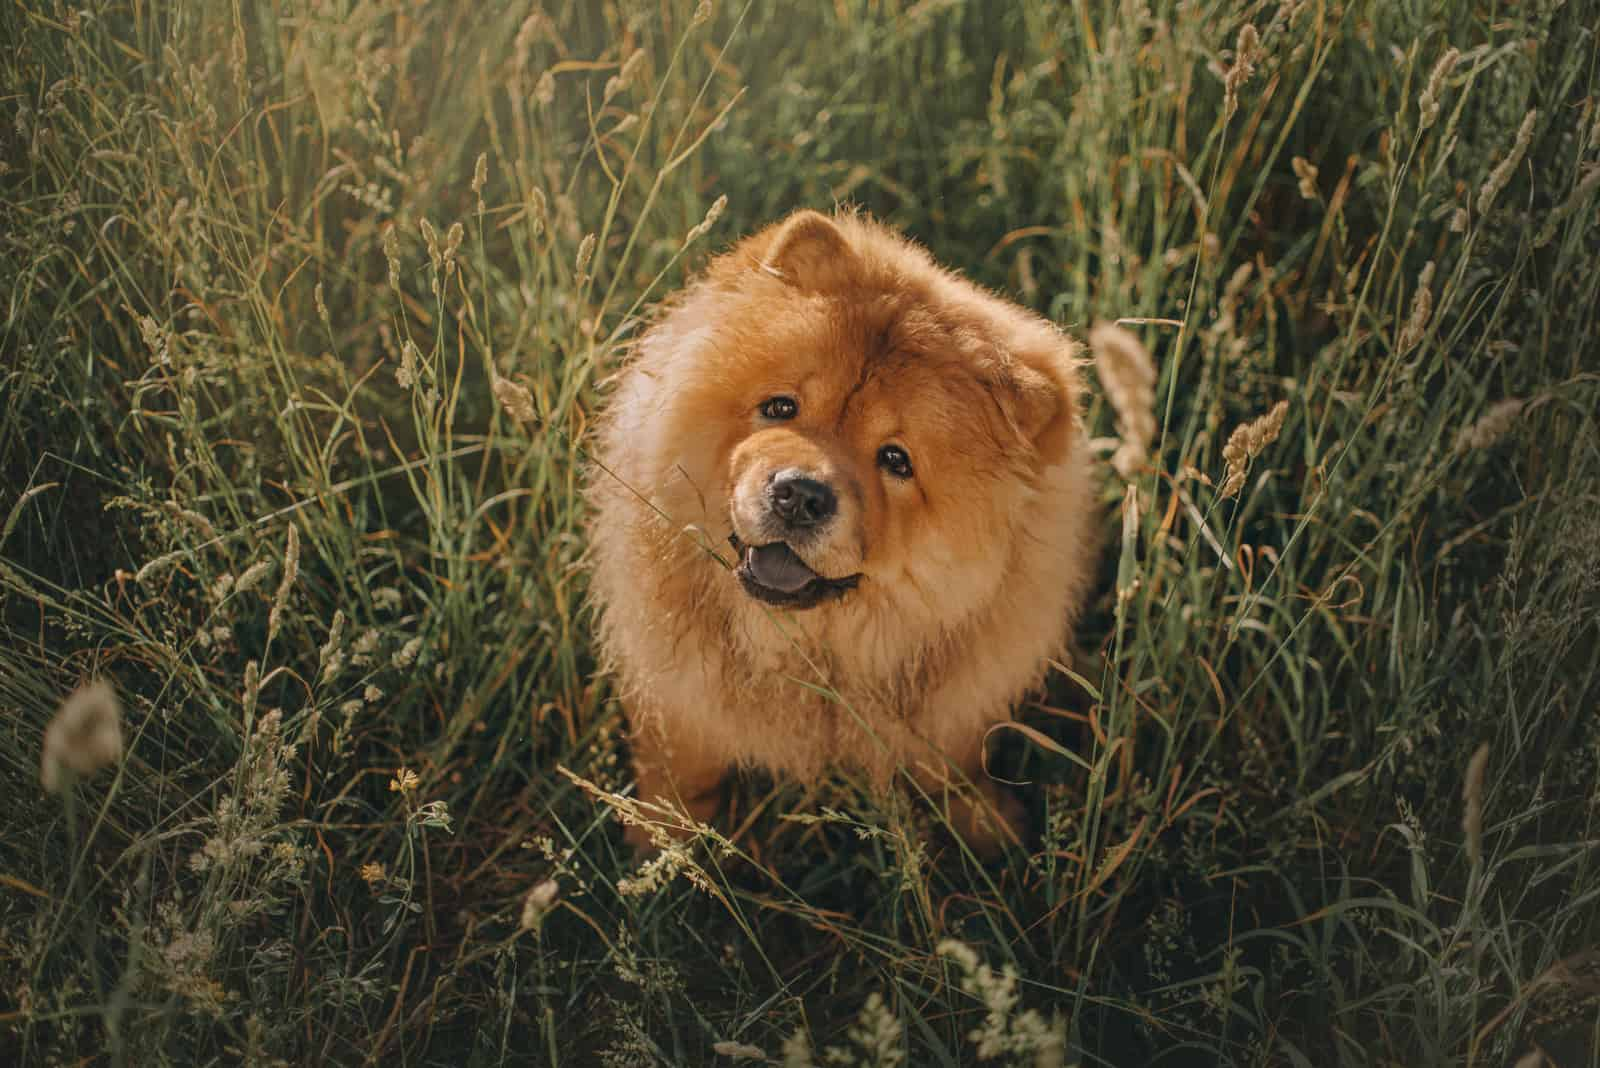 chow chow dog sitting in long grass outdoors